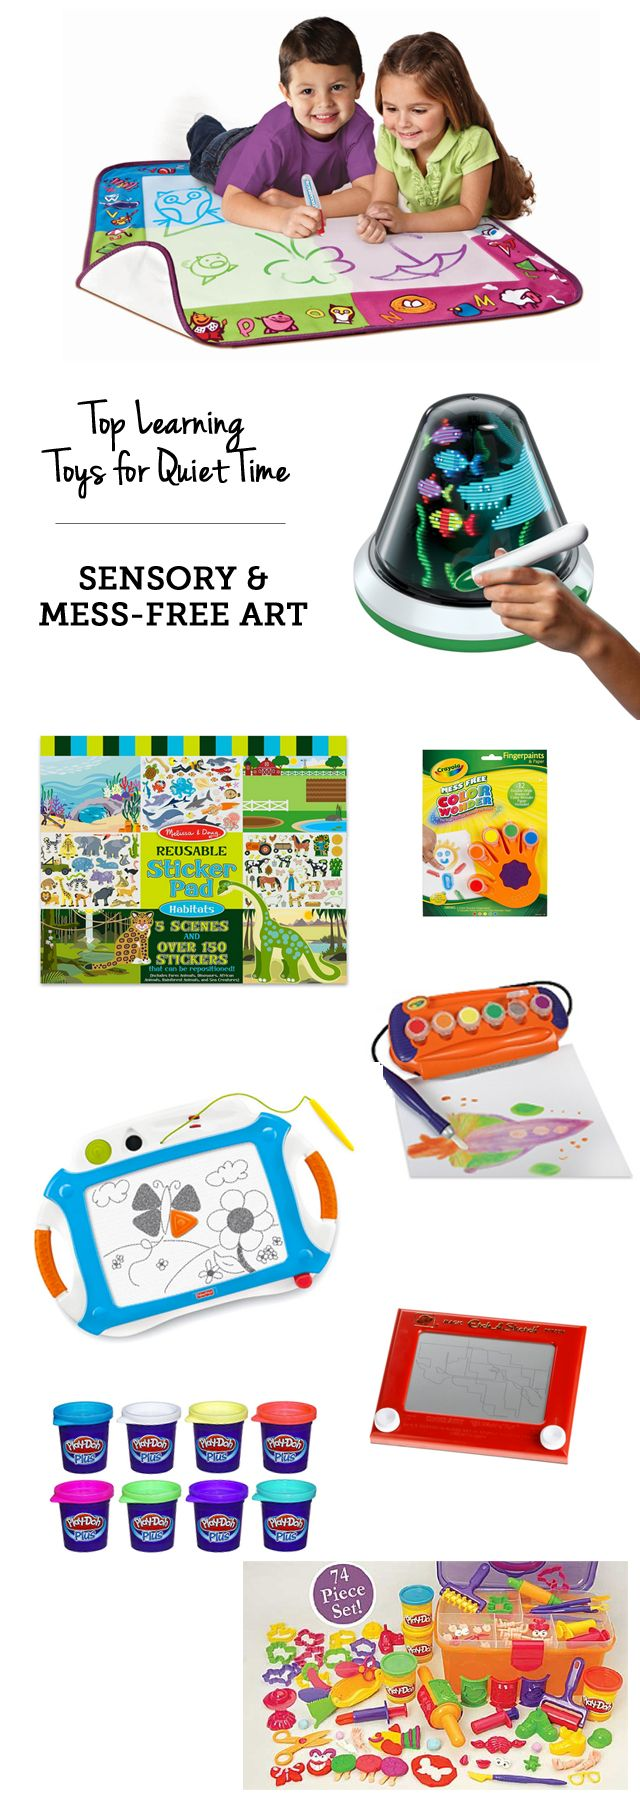 Keep kiddos busy with these educational toys- Top learning toys for quiet time: mess-free art supplies via MPMK: